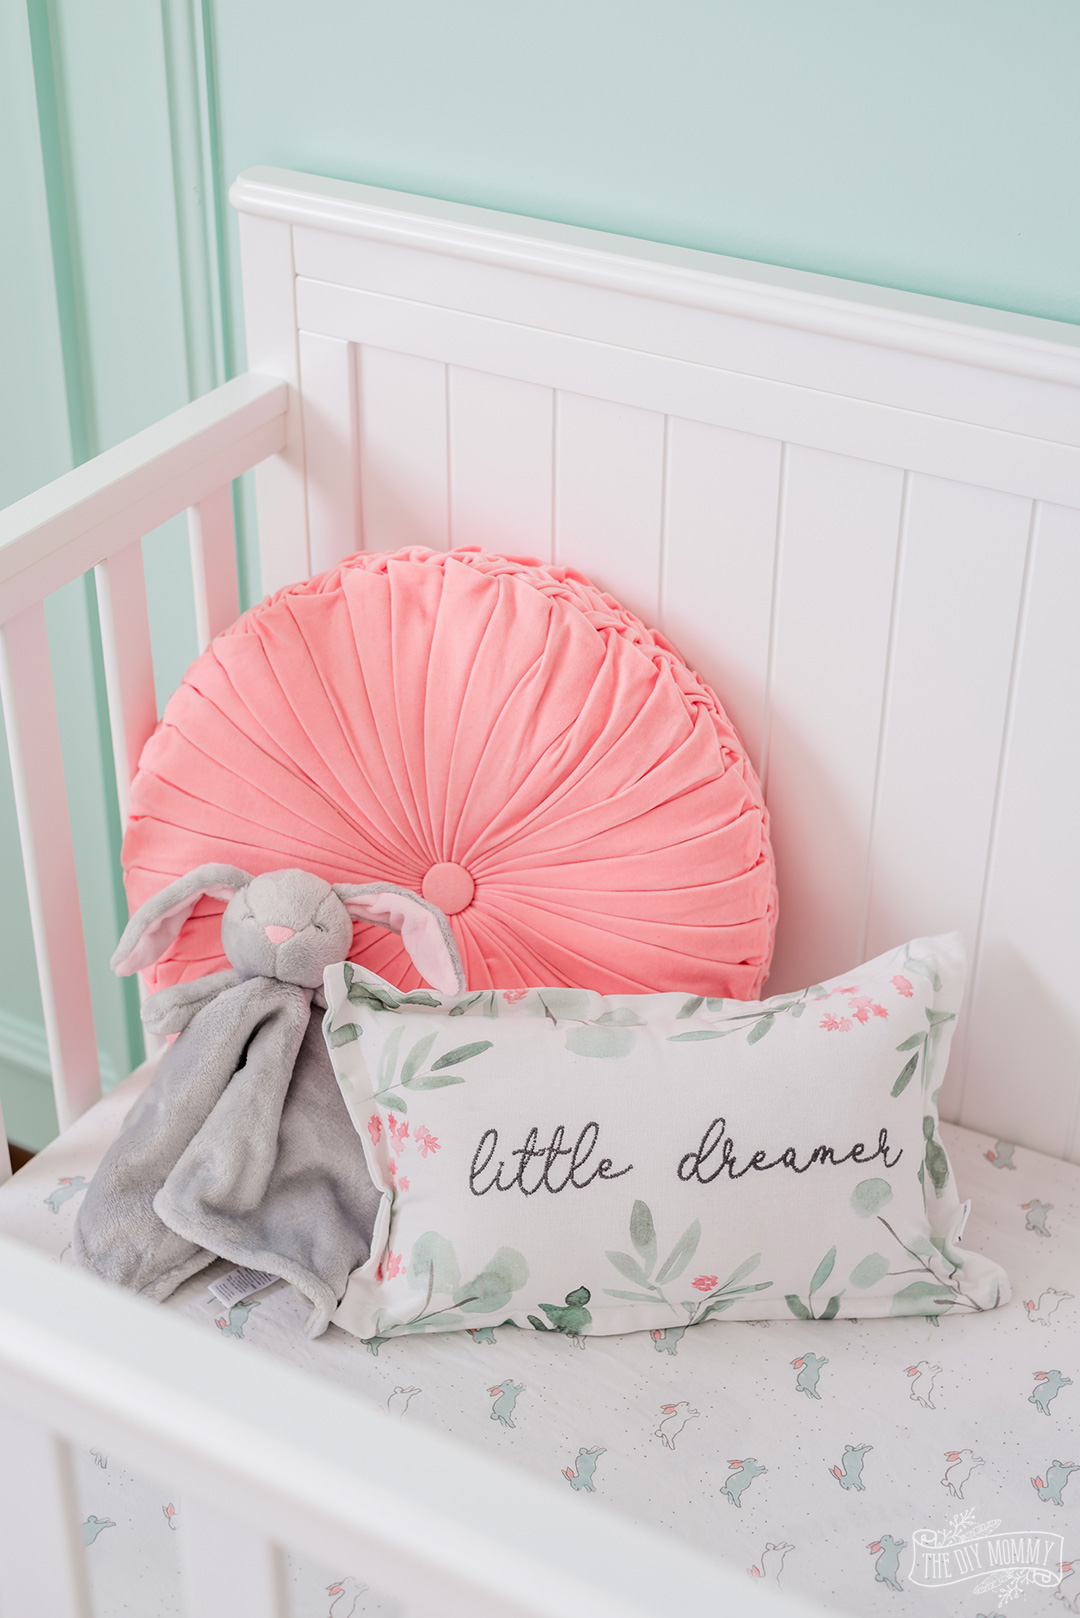 Traditional mint Green, pink & white nursery decor ideas